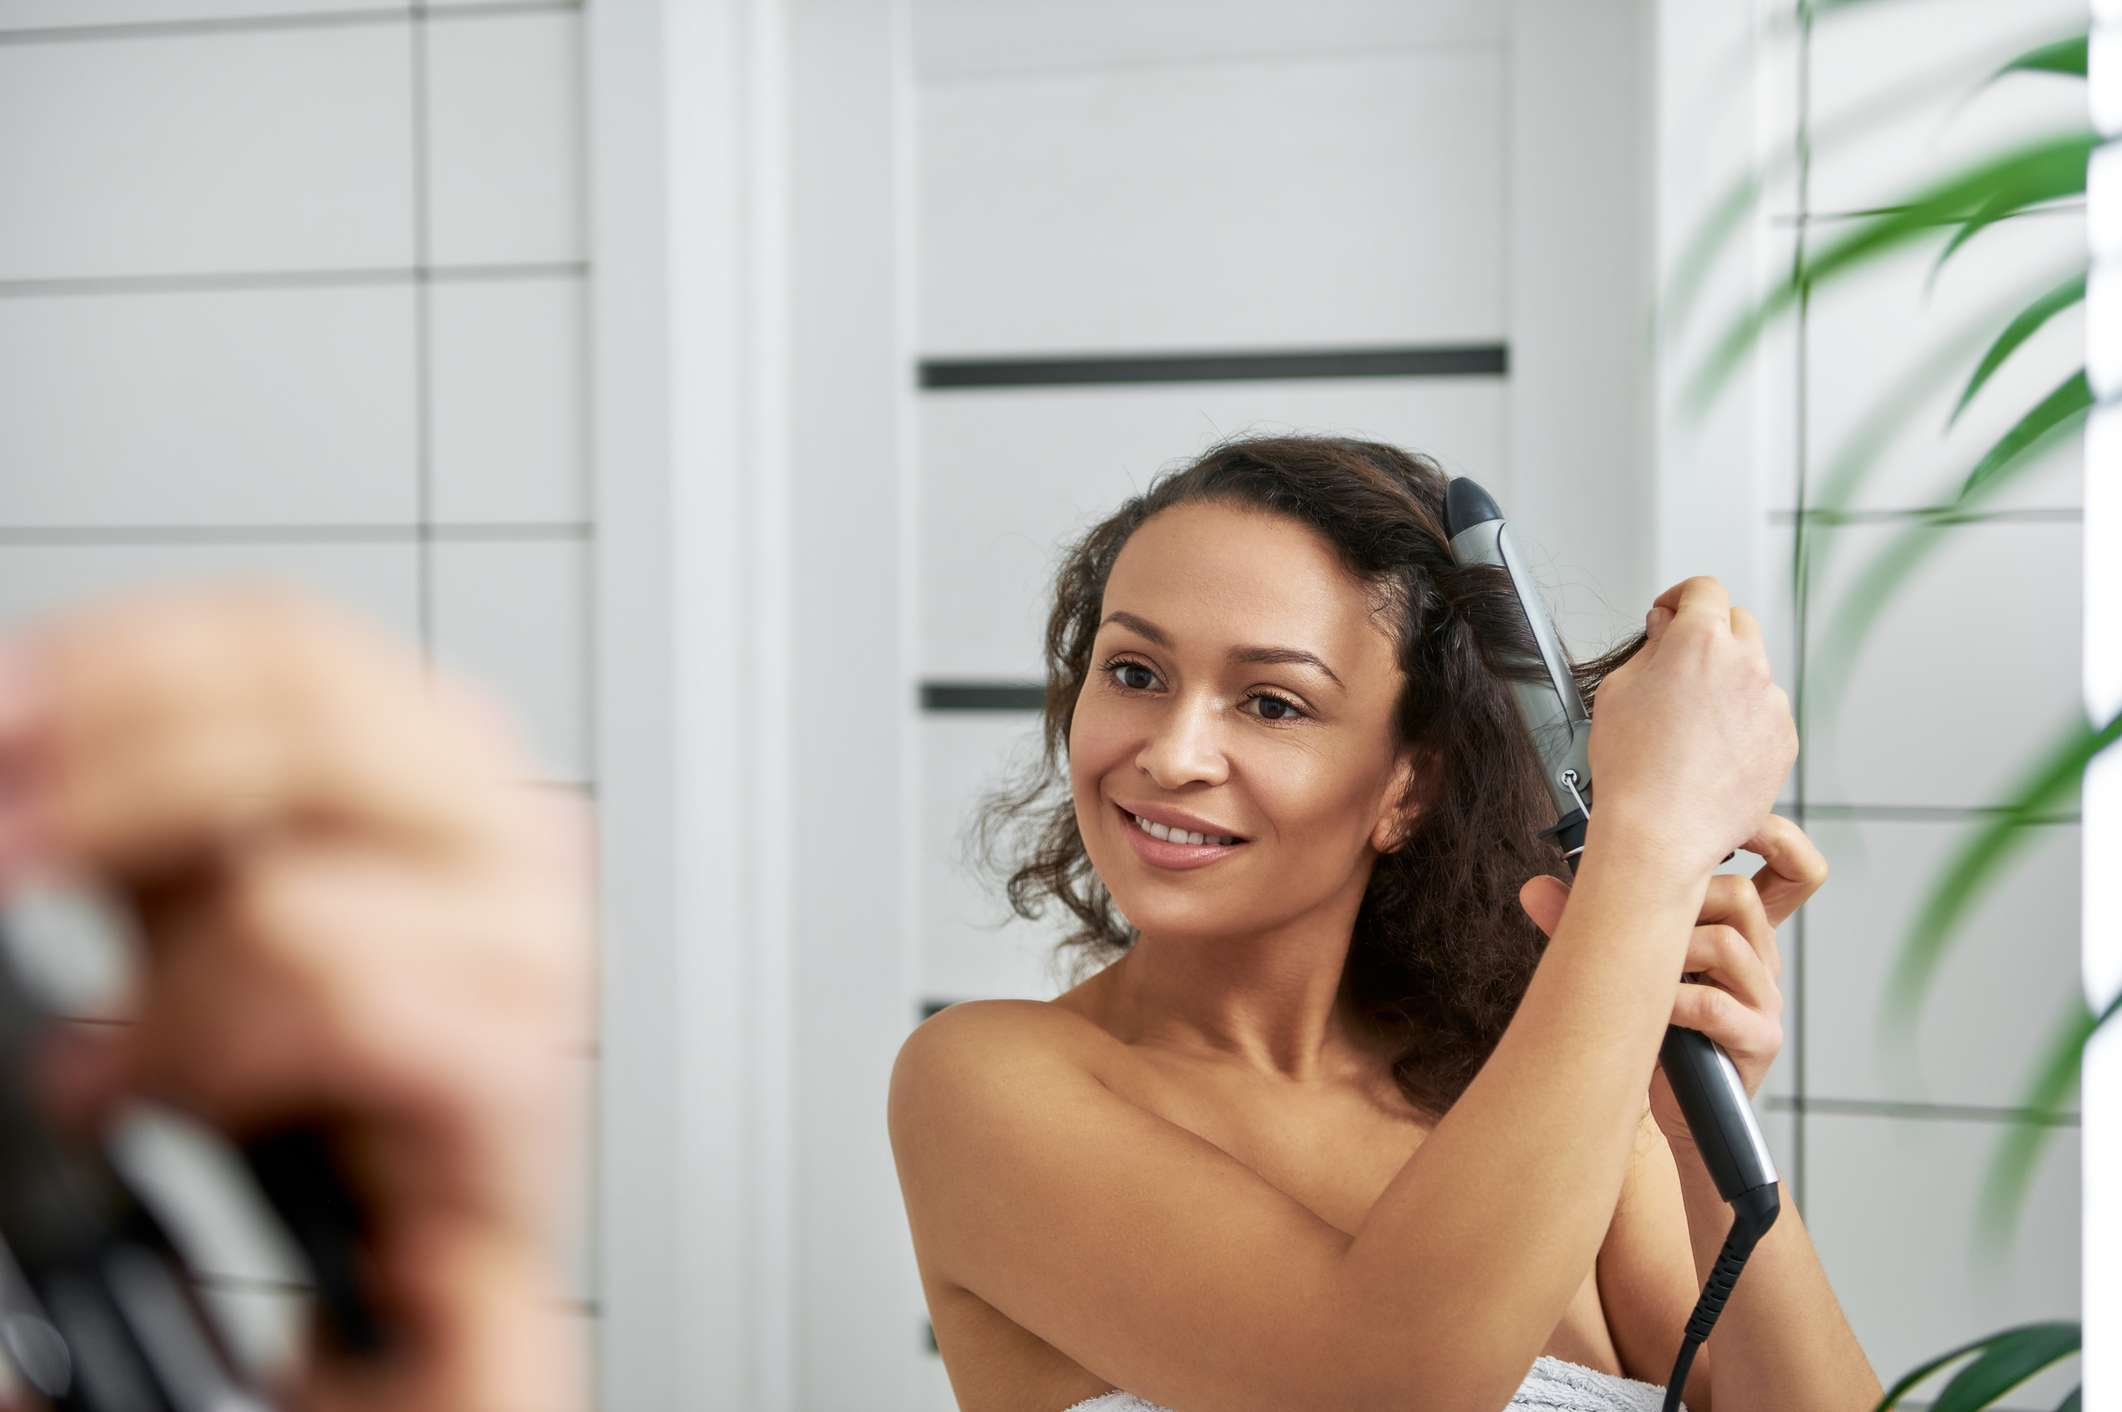 A light skinned black woman curling her hair in the mirror.